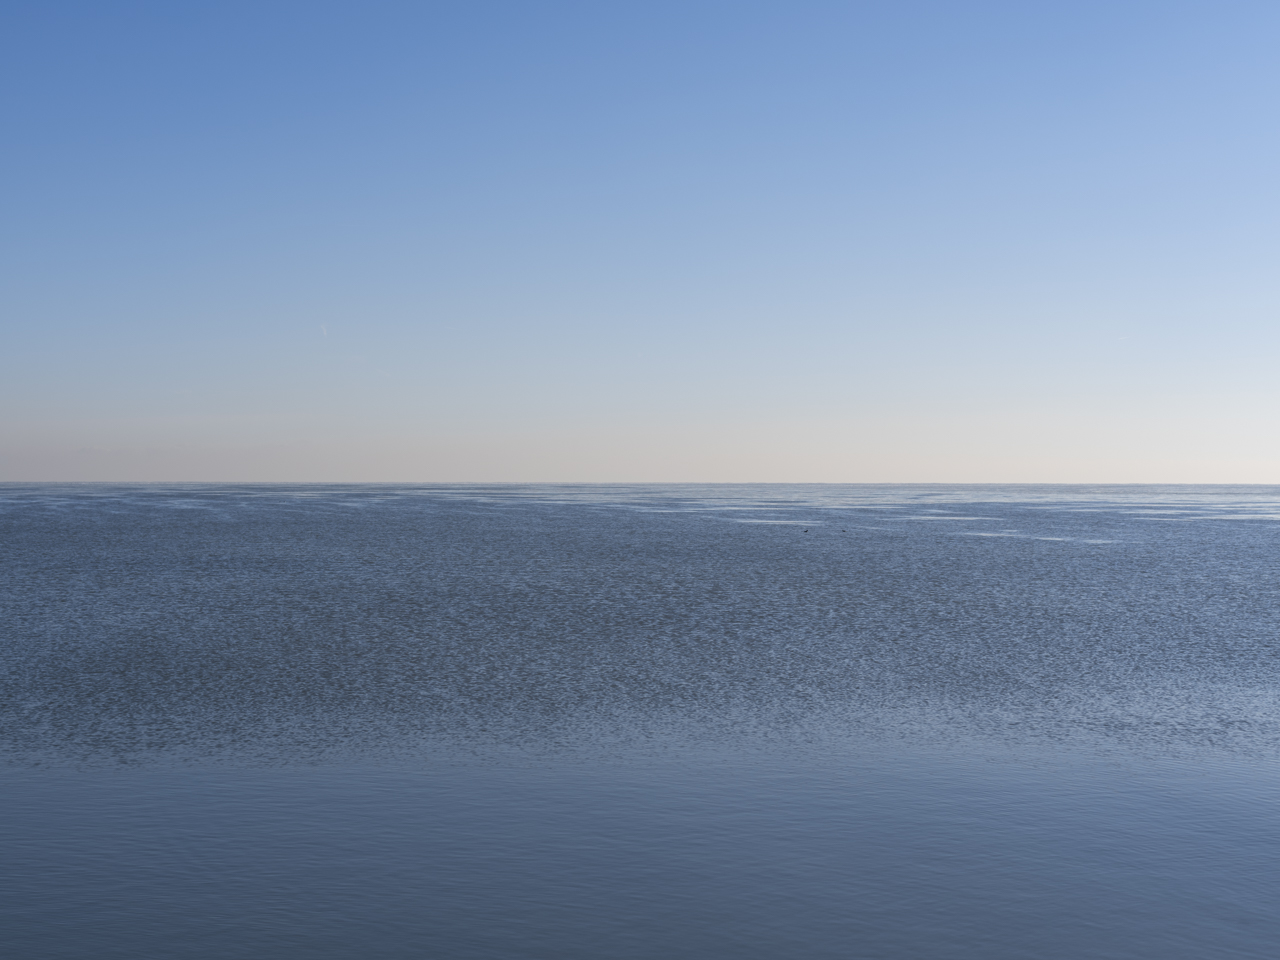 clear blue sky over rippling waters of Lake Michigan